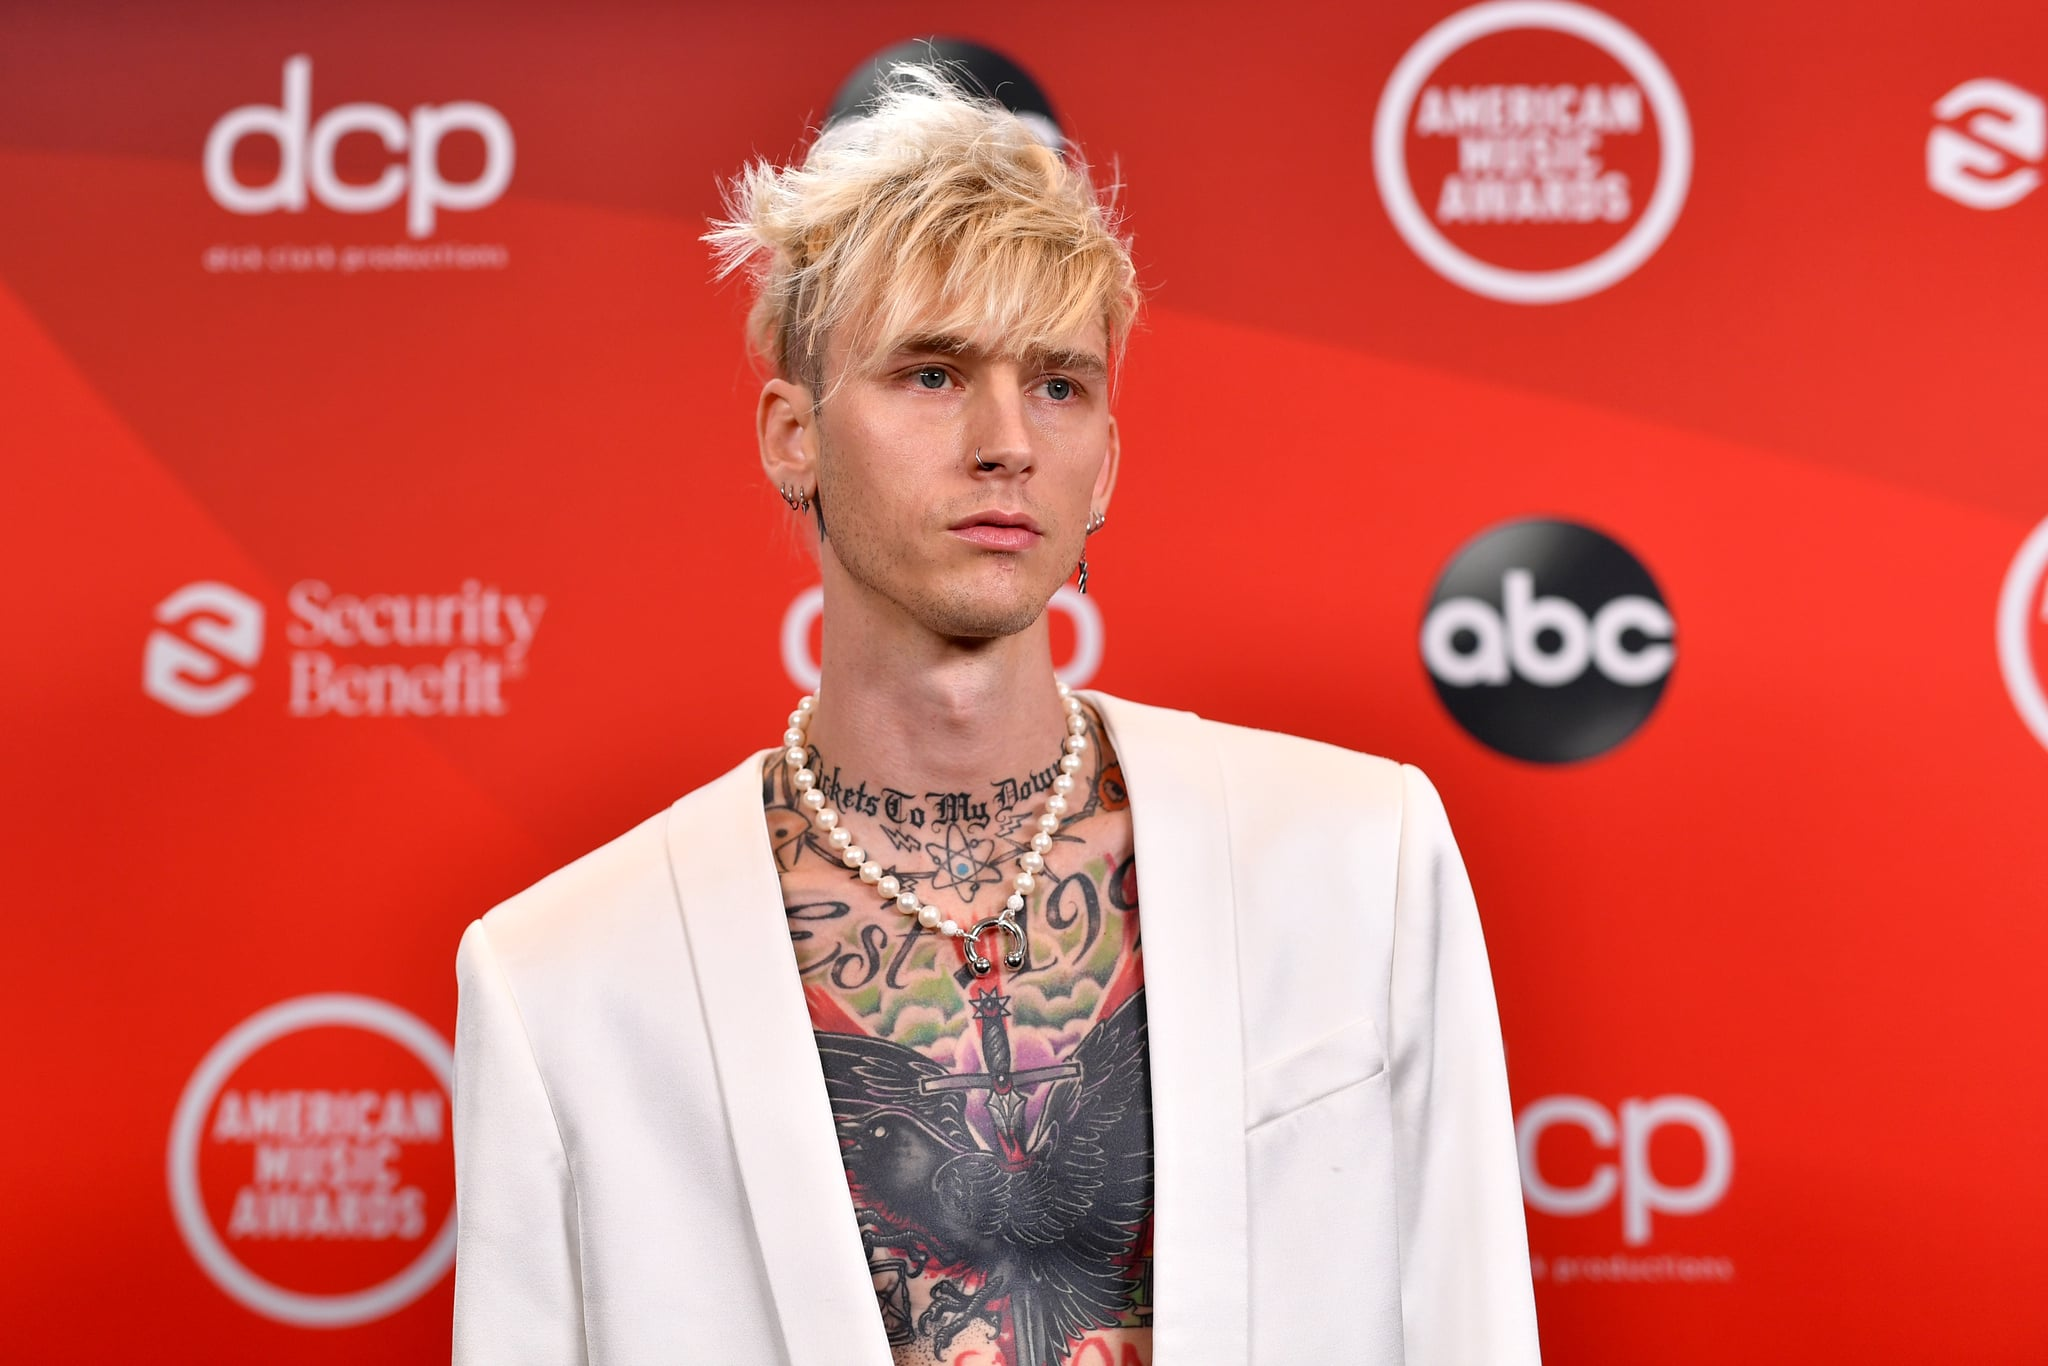 LOS ANGELES, CALIFORNIA - NOVEMBER 22: In this image released on November 22, Machine Gun Kelly attends the 2020 American Music Awards at Microsoft Theater on November 22, 2020 in Los Angeles, California. (Photo by Emma McIntyre /AMA2020/Getty Images for dcp)